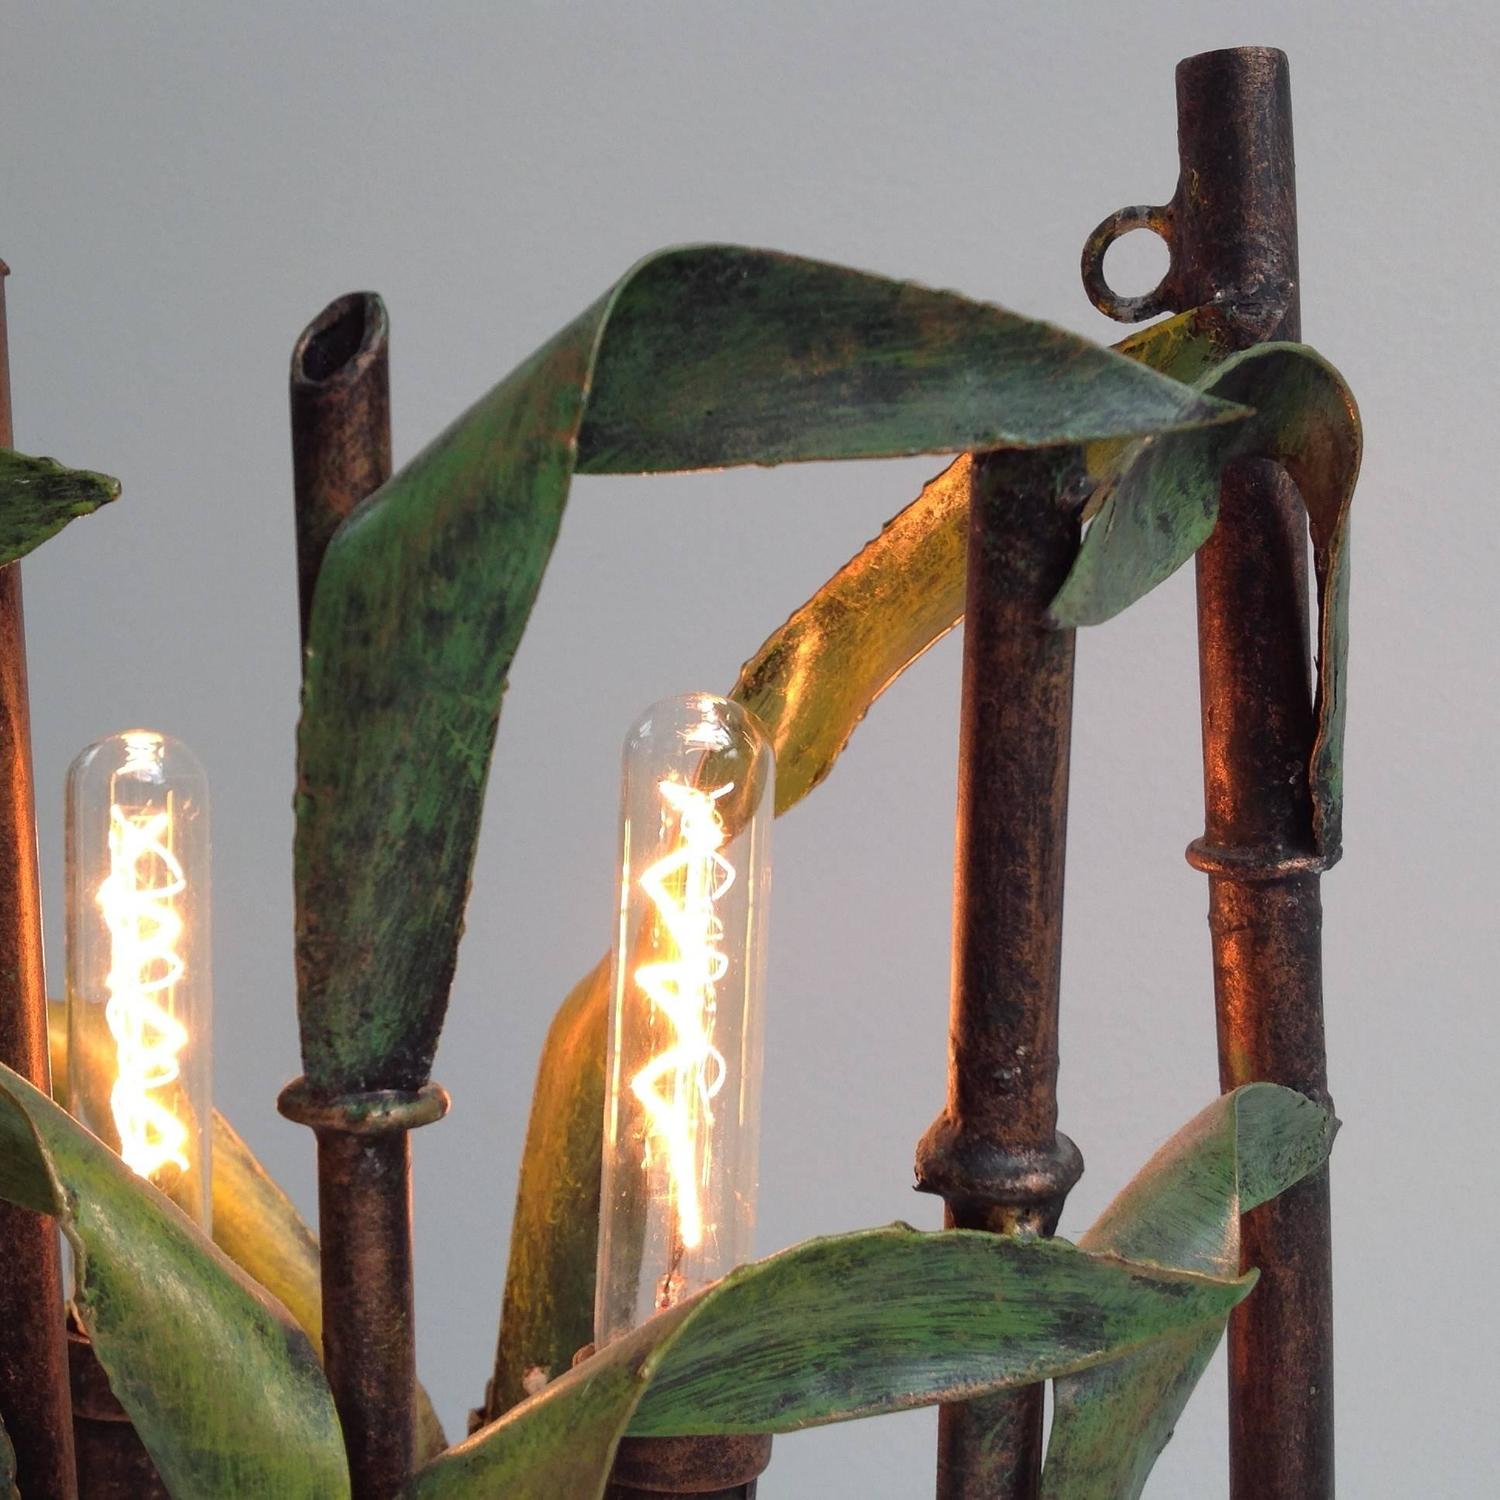 Small White Wall Lights : Very Beautiful Bamboo Art Wall Light, Anno, 1970 For Sale at 1stdibs